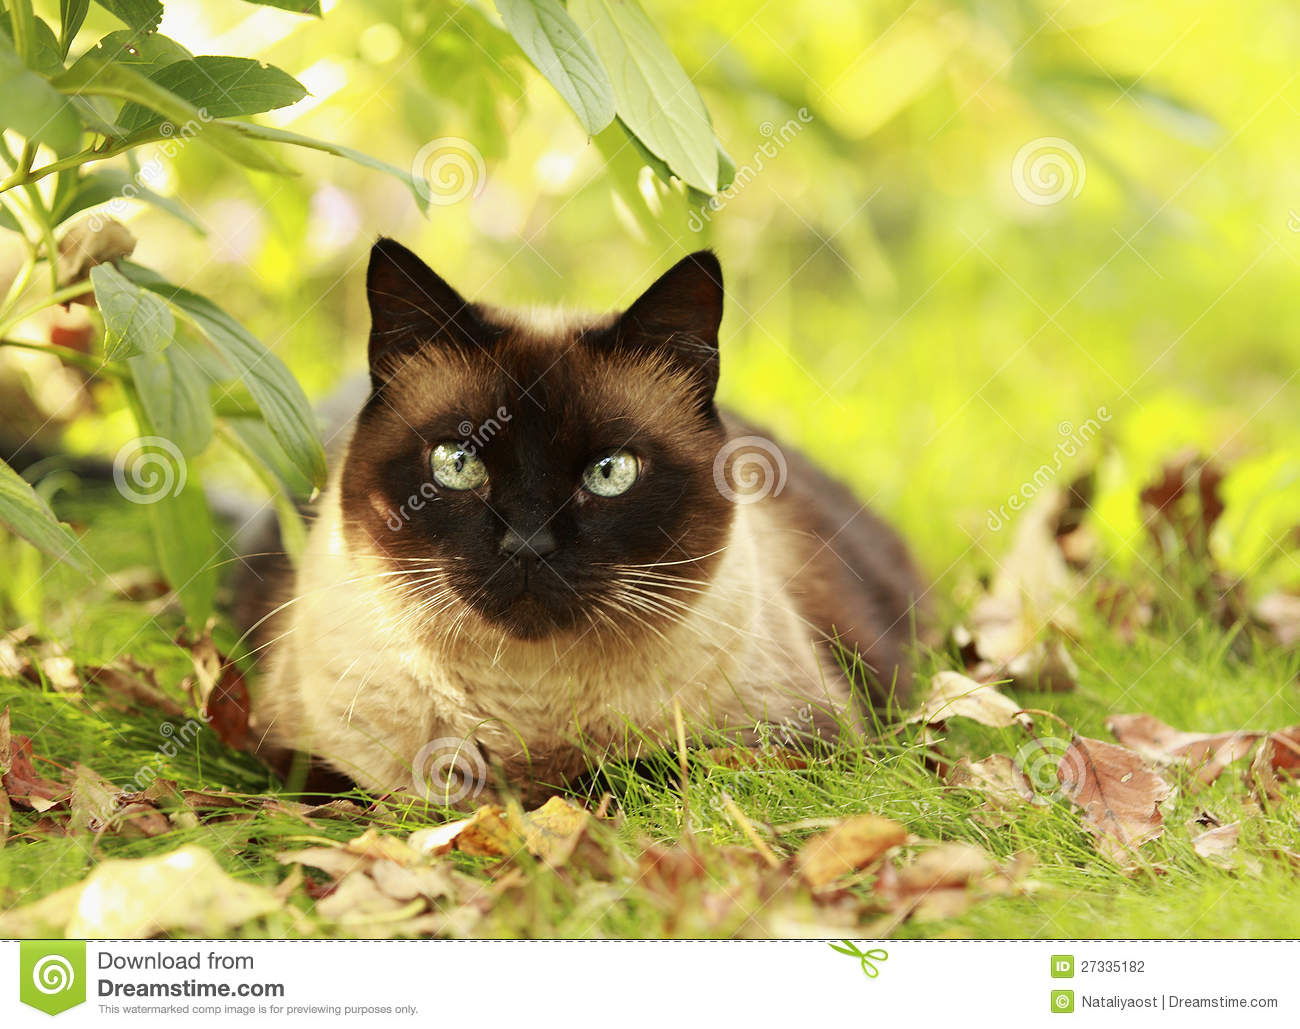 ... Siamese, with blue-green eyes lies in a green grass and yellow leaves